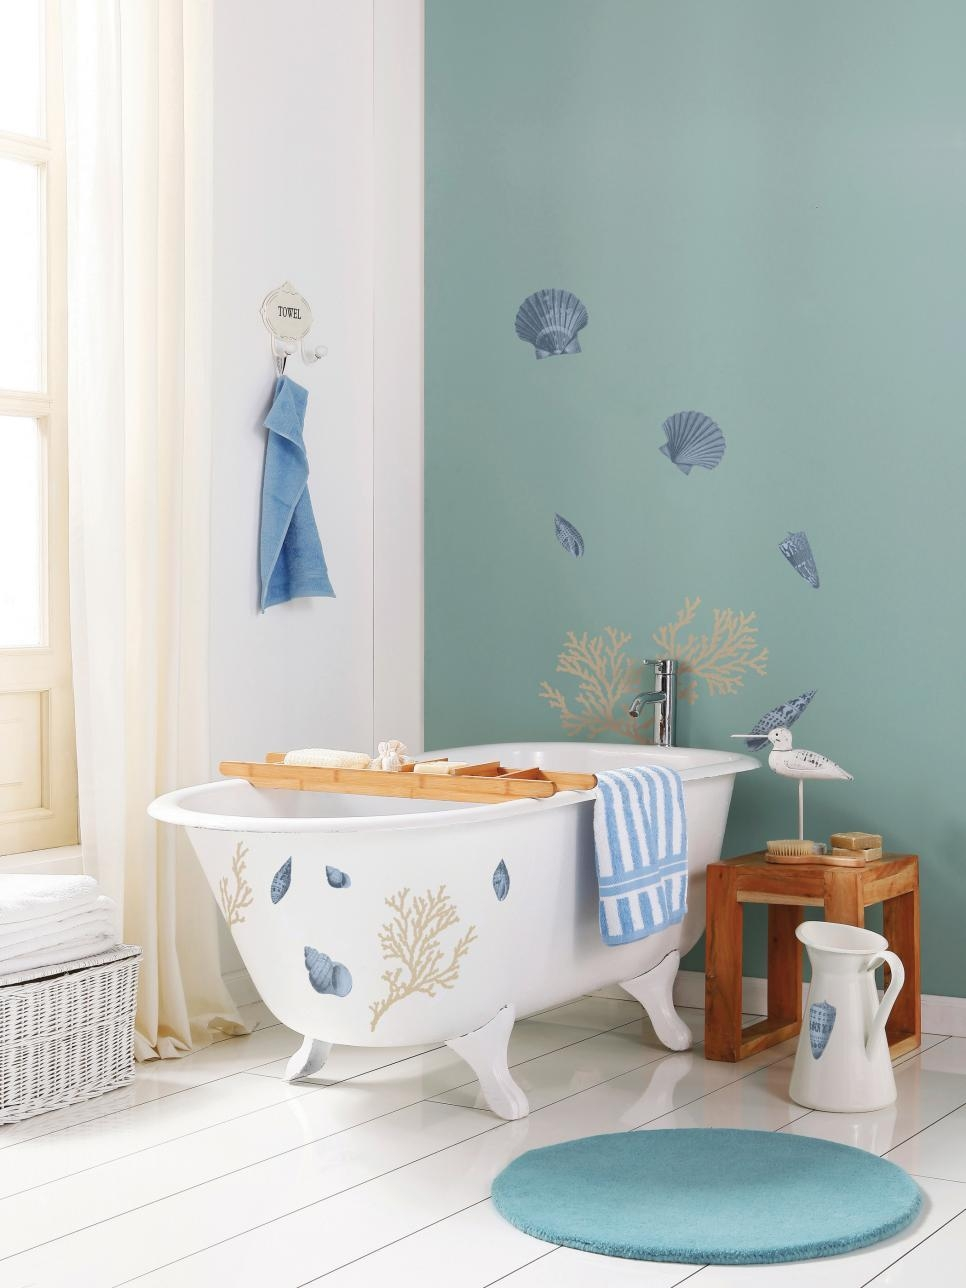 Bathroom: Kohls Wall Art | Nautical Themed Bathroom | Nautical Pertaining To Kohls Wall Art Decals (View 14 of 17)